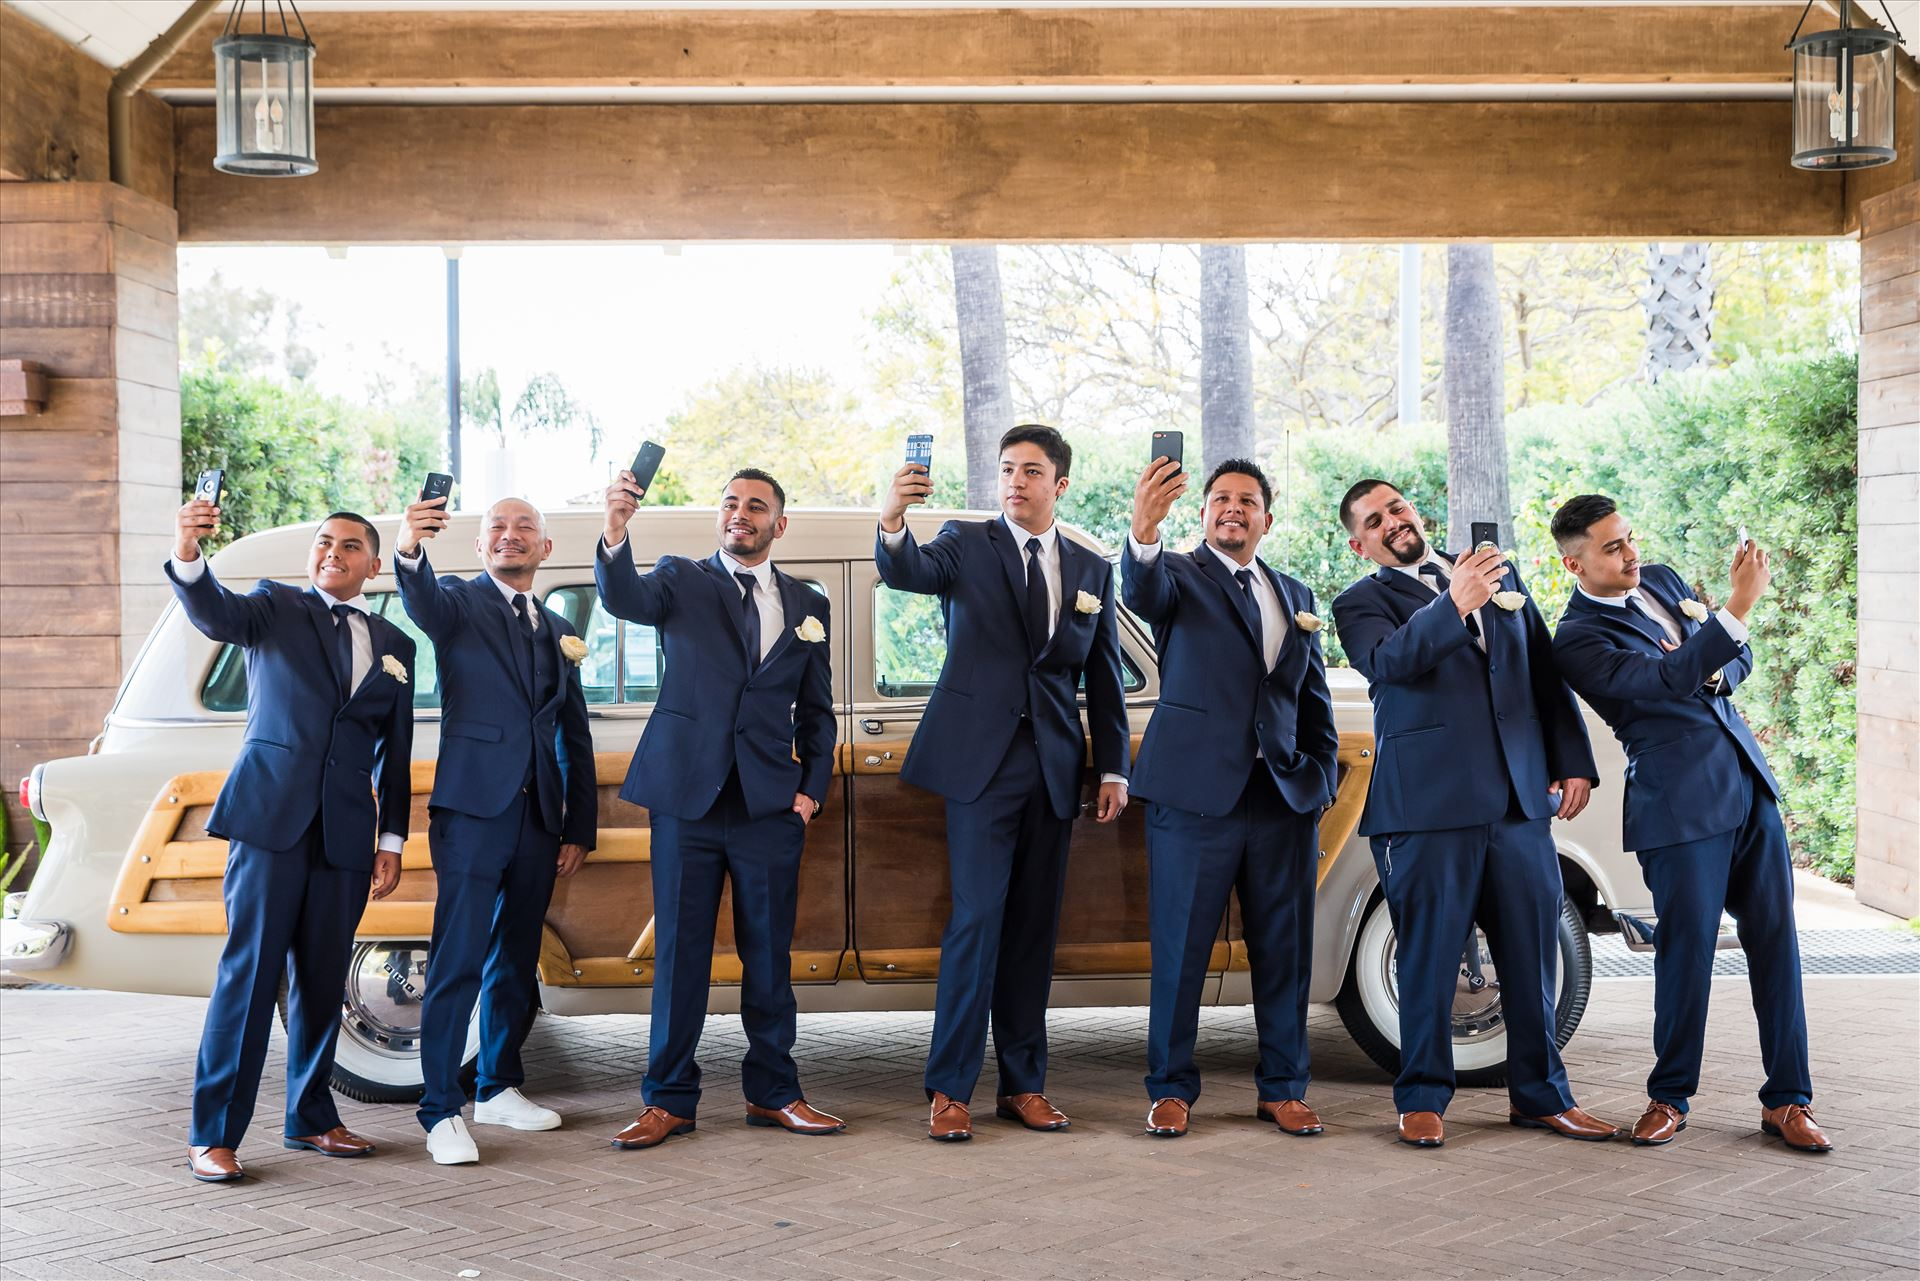 Ana and Juan 17 - Wedding photography at the Kimpton Goodland Hotel in Santa Barbara California by Mirror's Edge Photography.  Groom and Groomsmen by Sarah Williams